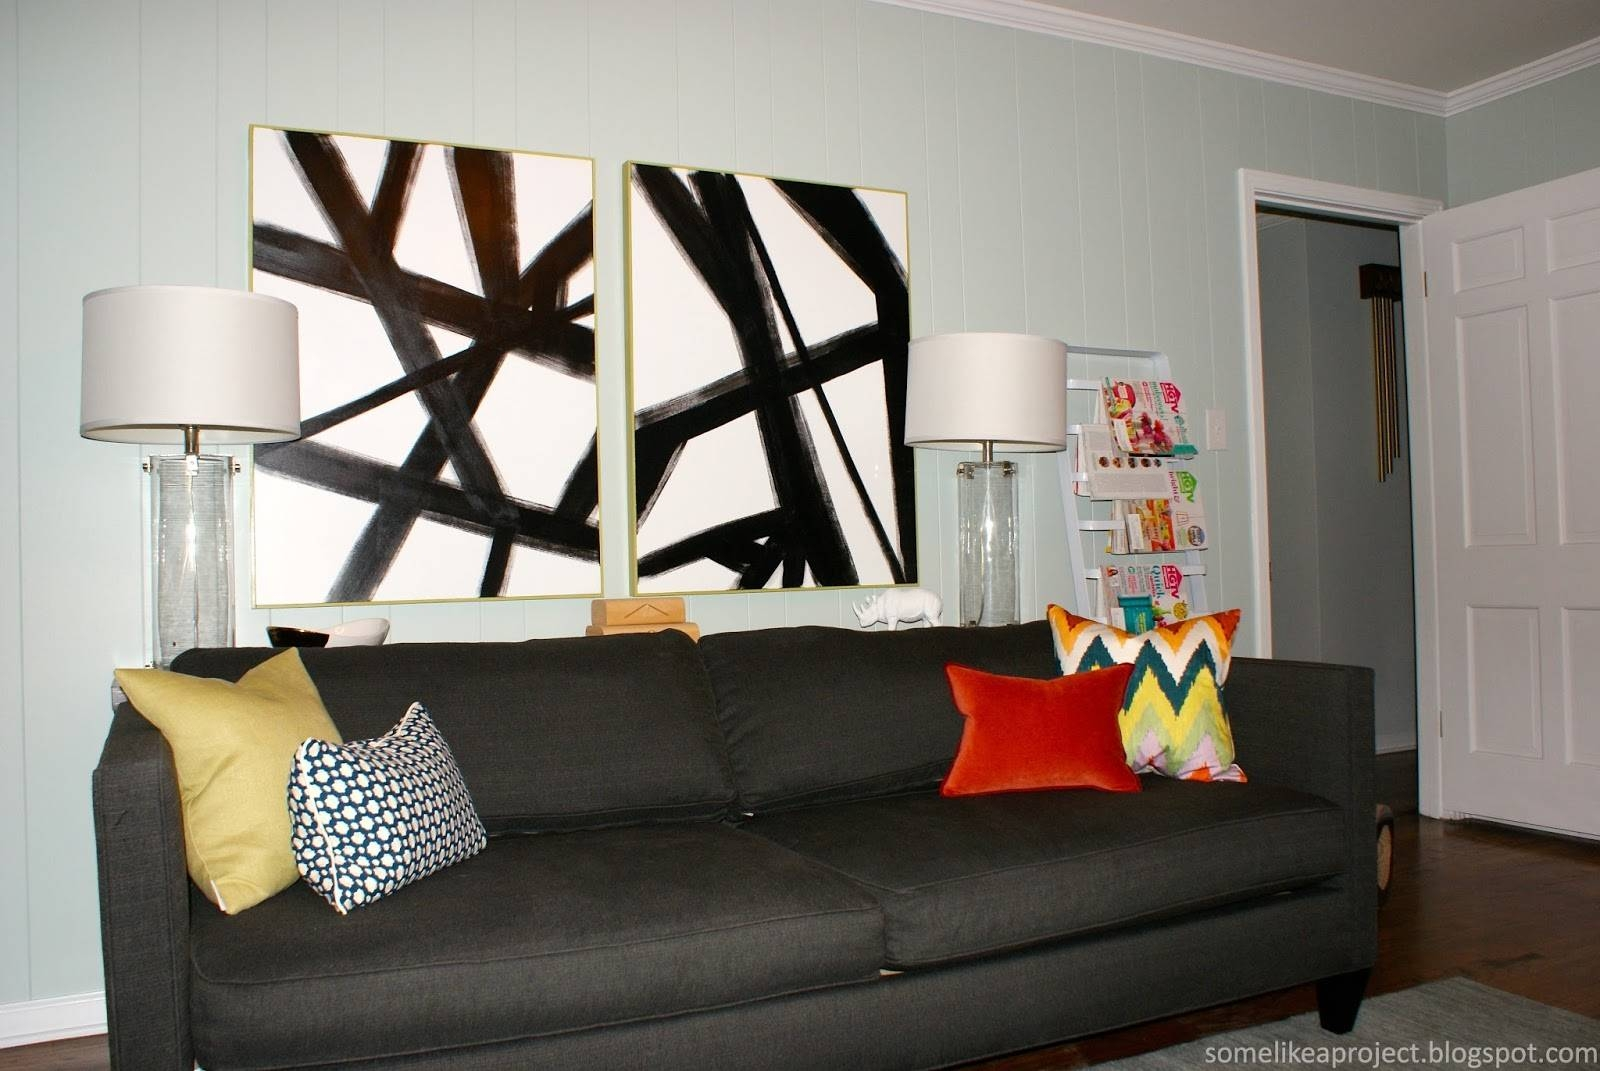 Some Like A Project: Large Diy Black & White Abstract Art Throughout Most Recently Released Large Black And White Wall Art (View 18 of 20)